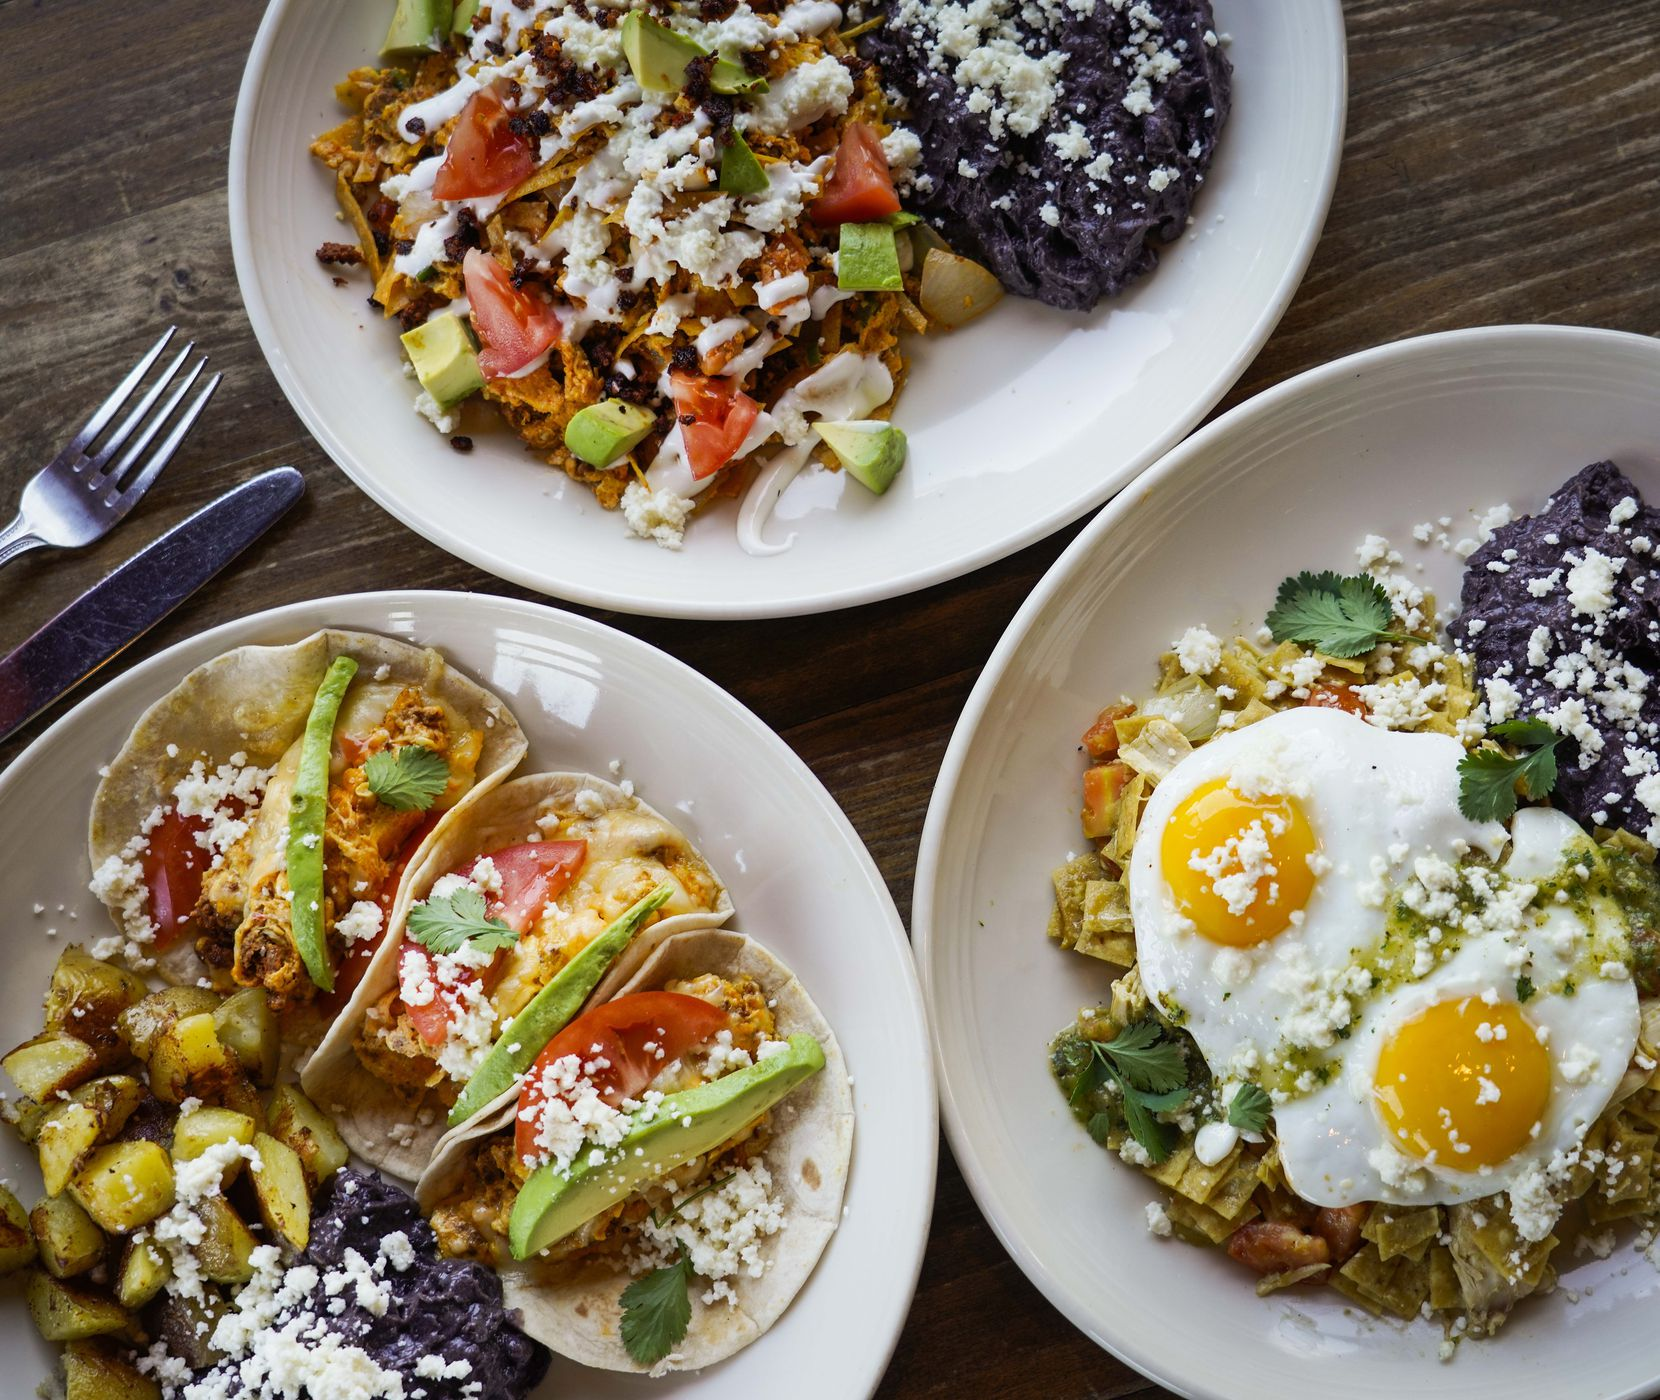 Chorizo migas (top), chilaquiles verdes (right) and chorizo eggs and cheese tacos are among the weekend brunch Easter specials at Meso Maya, photographed on March 26, 2020, in Dallas.